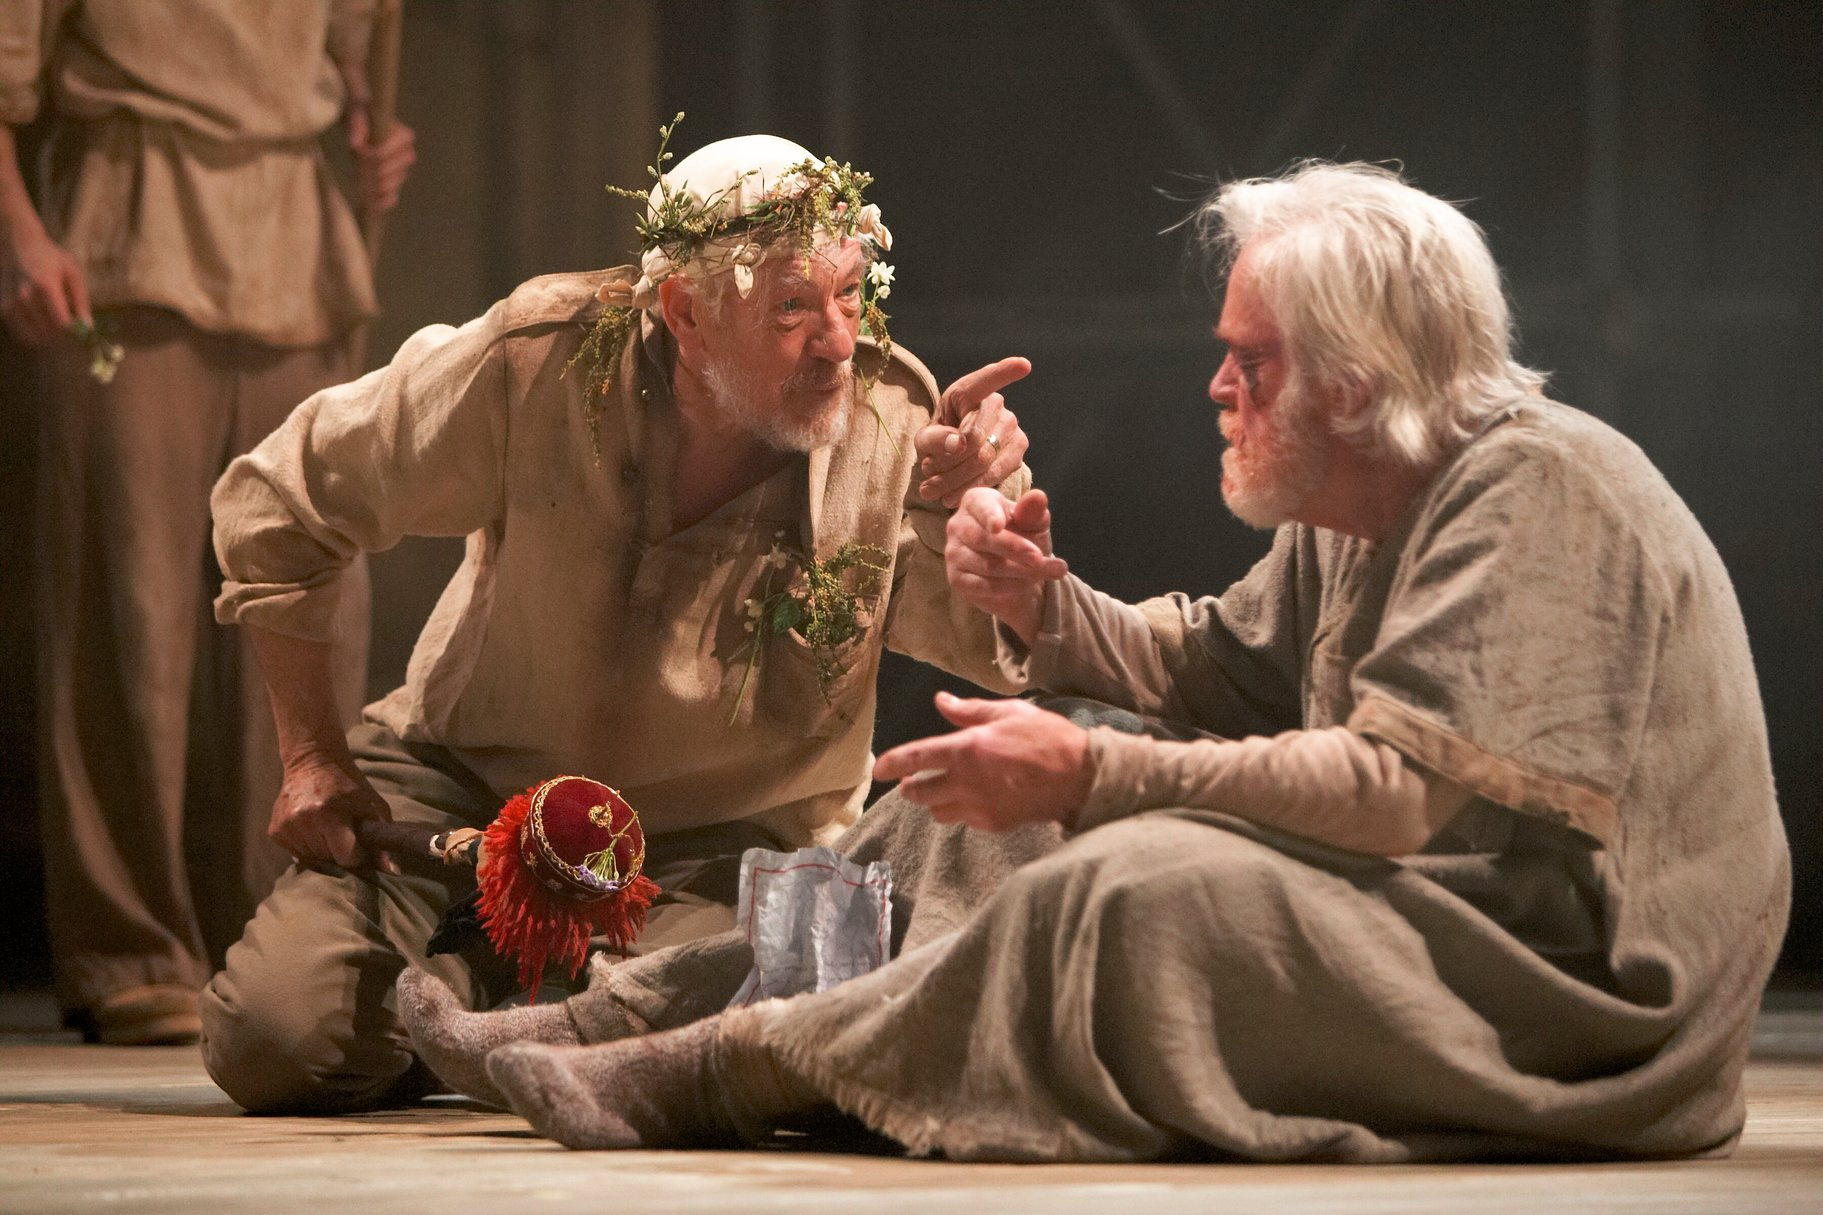 """an analysis of the two critical scenes in shakespeares play king lear A discussion of how the first two scenes of shakespeare's """"king lear"""" are pivotal in influencing the plot of the play """"king lear, as i see it, confronts the."""